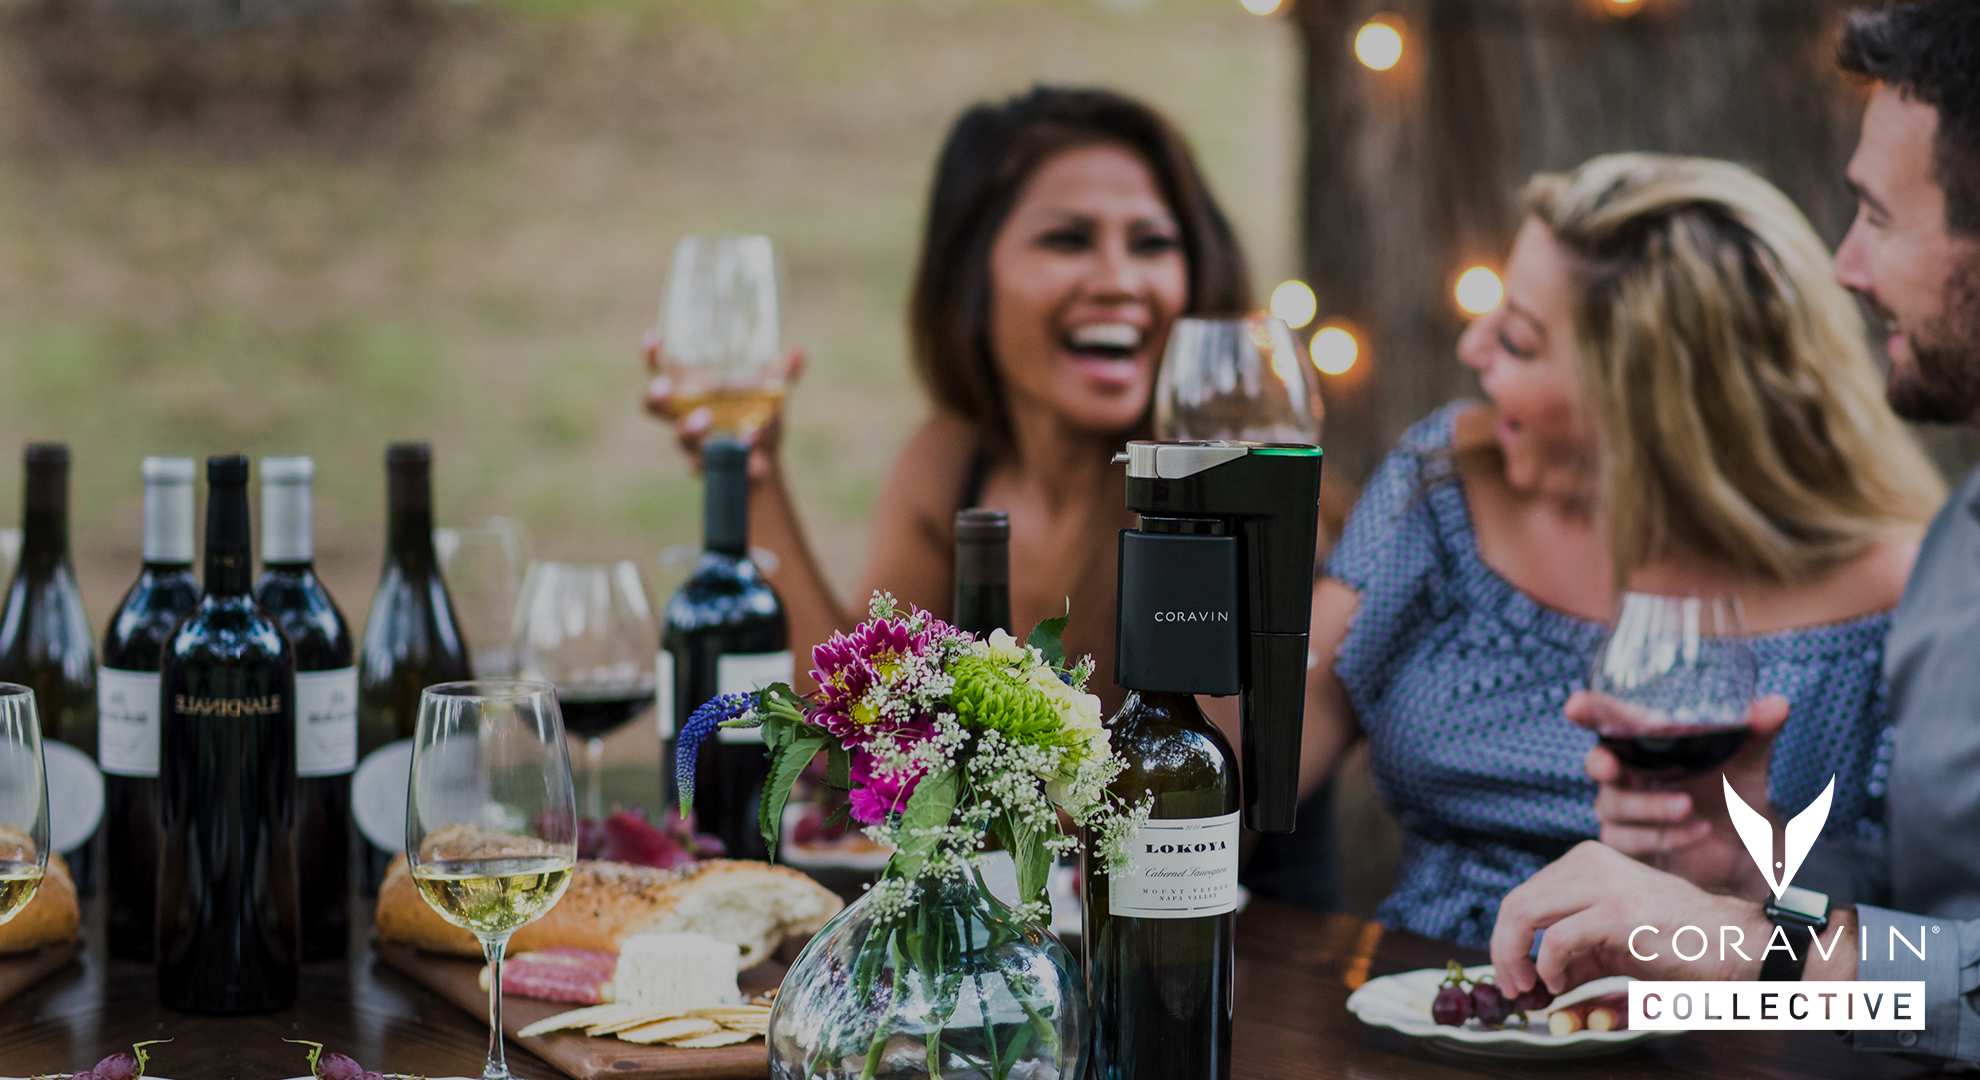 Friends using a Coravin to drink red and white wine outdoors at a picnic table, featuring the Coravin Collective logo.